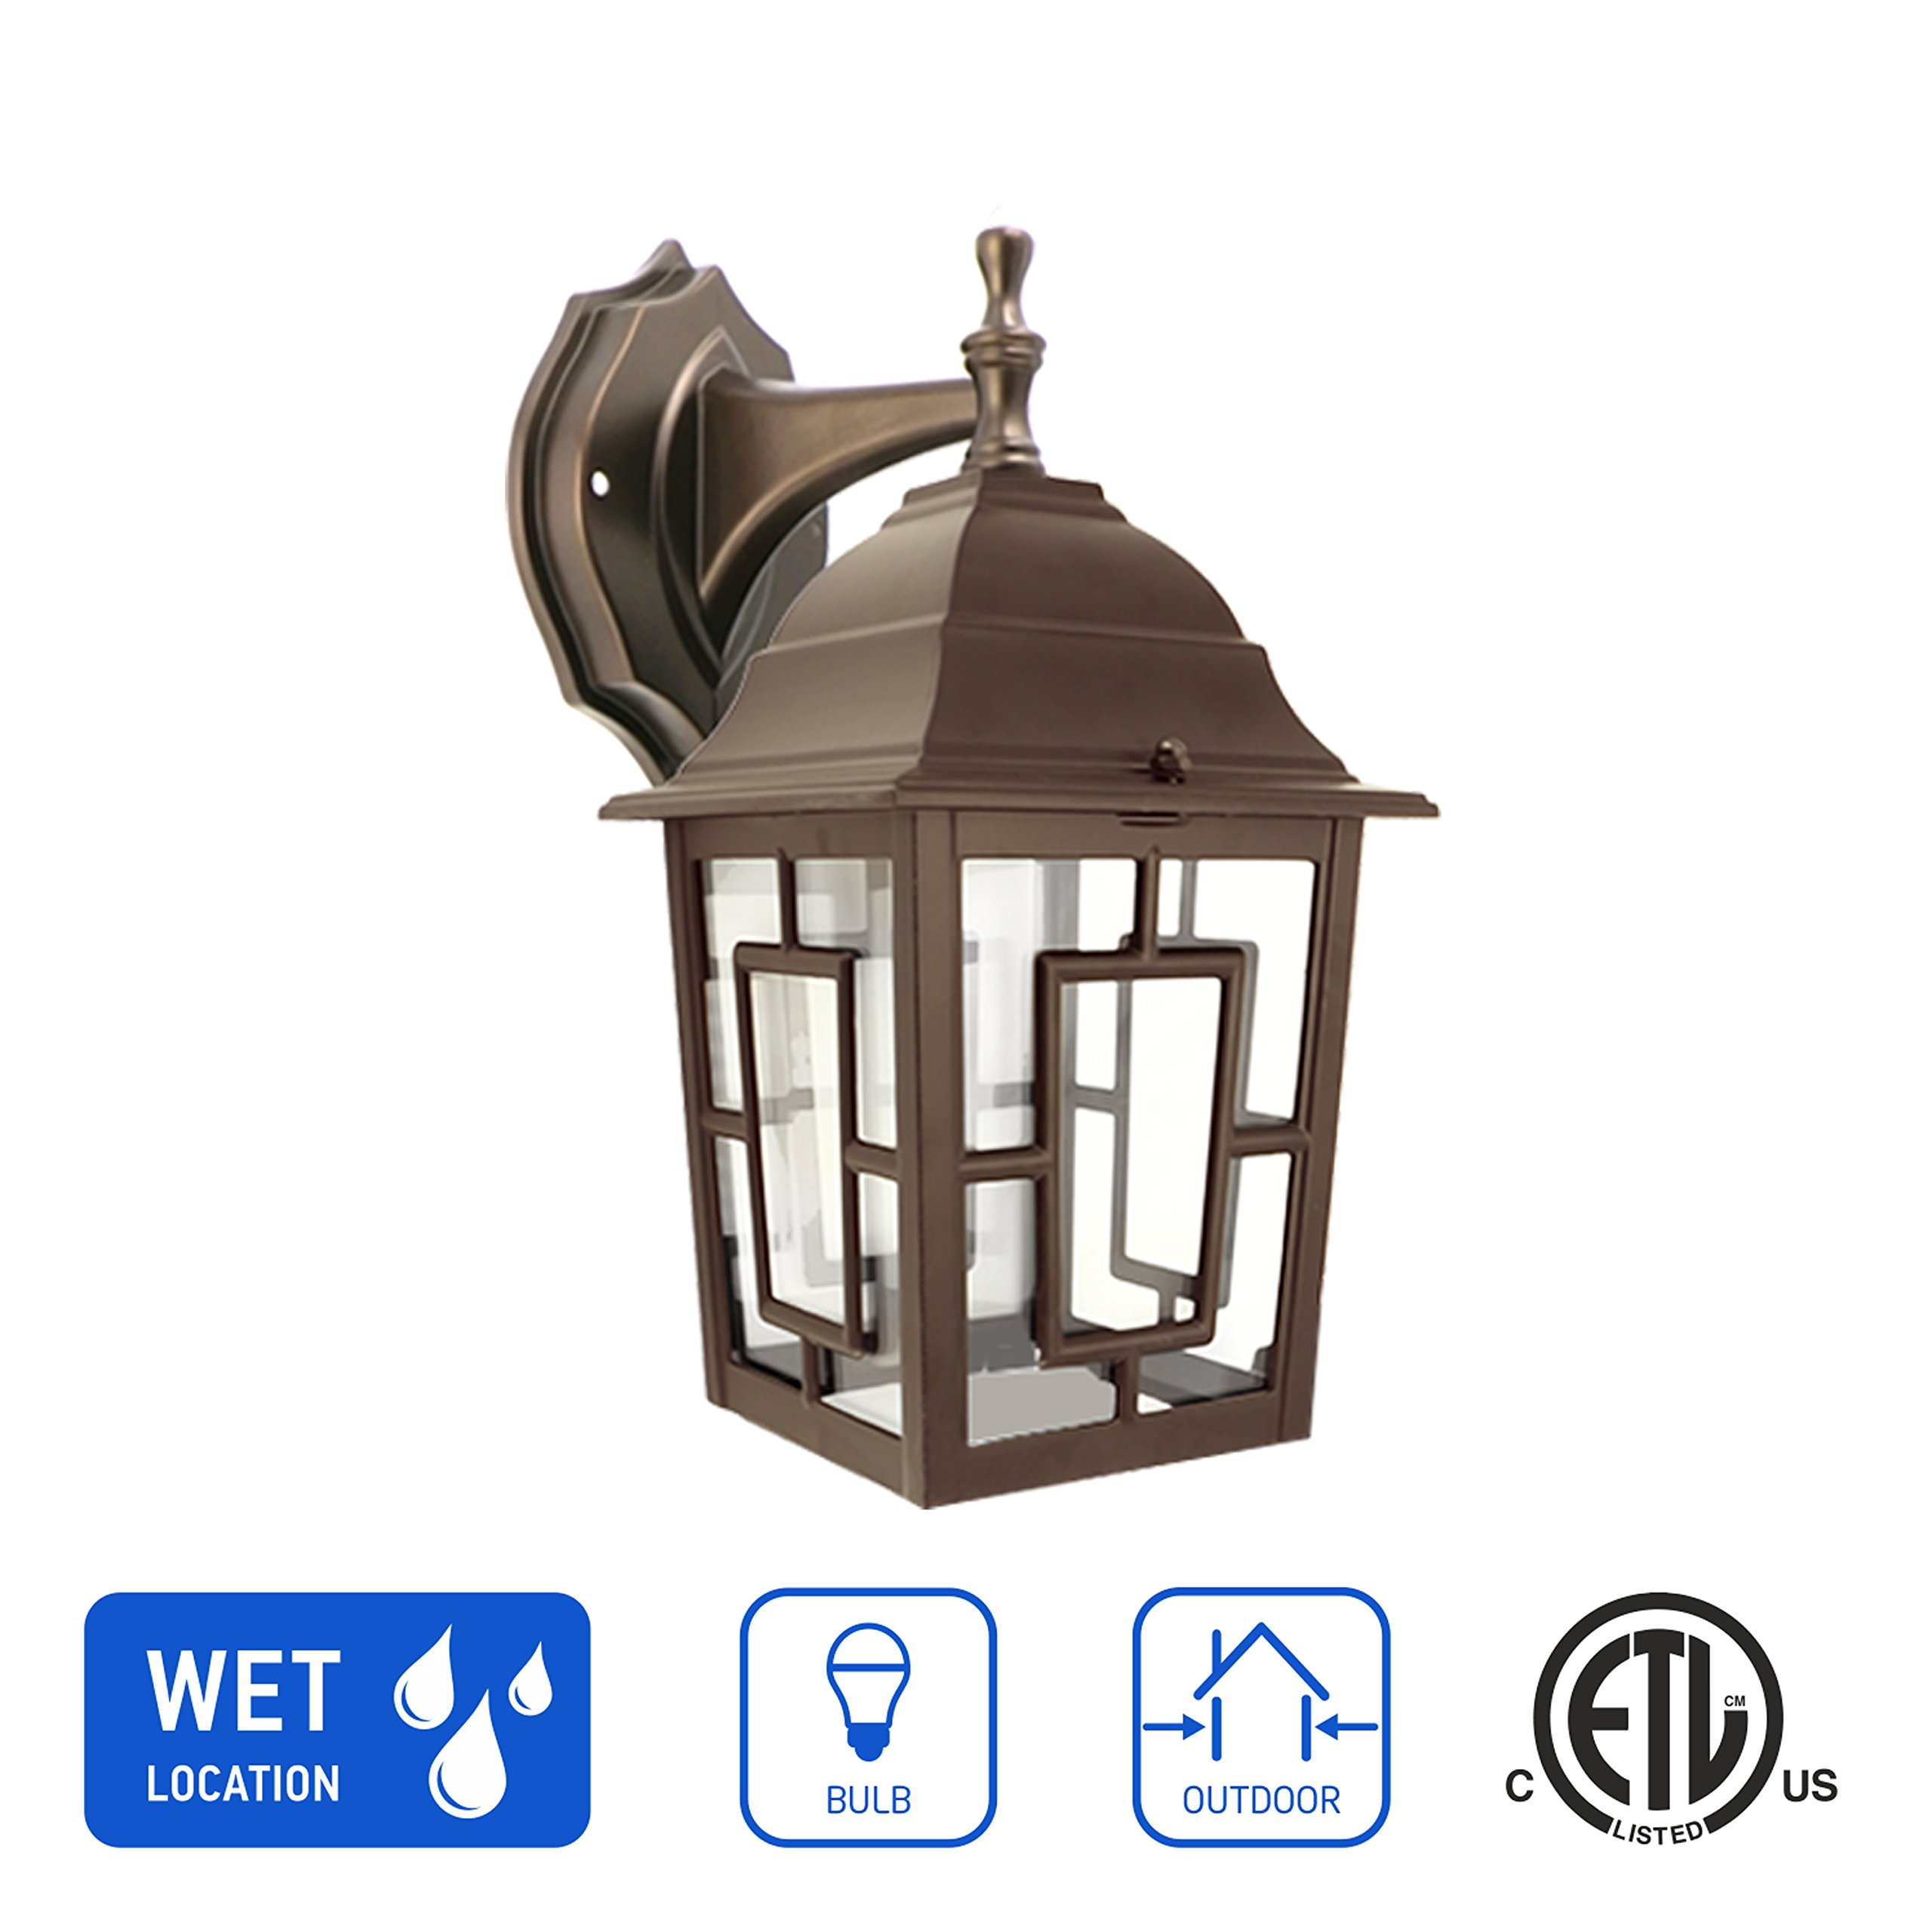 in Home 1-Light Outdoor Wall Mount Lantern Downward Fixture L05 Series Traditional Design Bronze Finish, Clear Glass Shade, ETL Listed